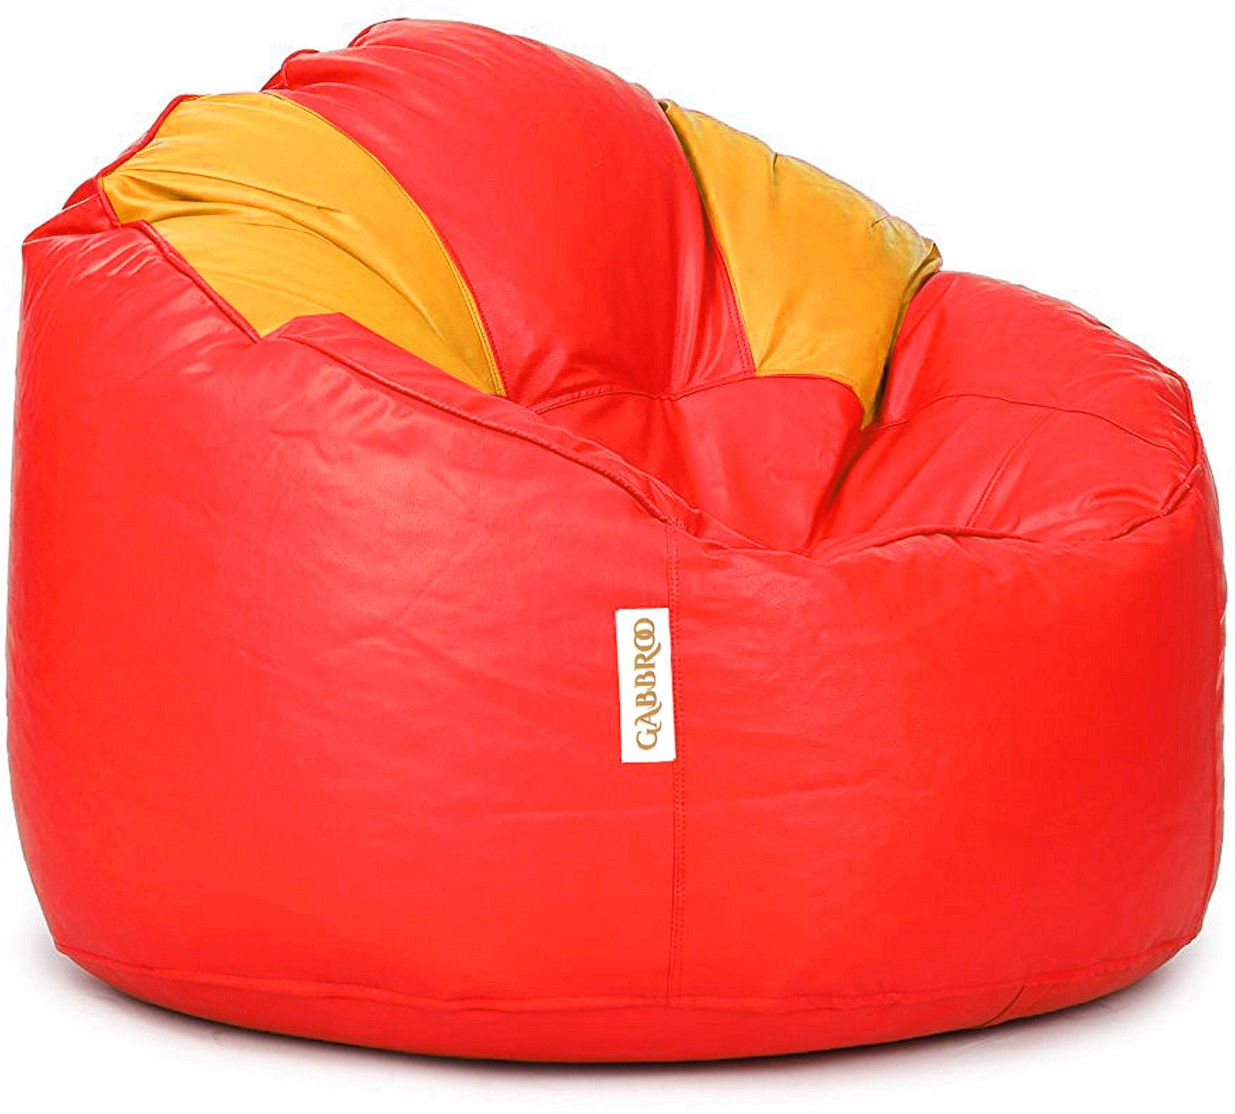 View Gabbroo XL Lounger Bean Bag Cover(Yellow, Red) Furniture